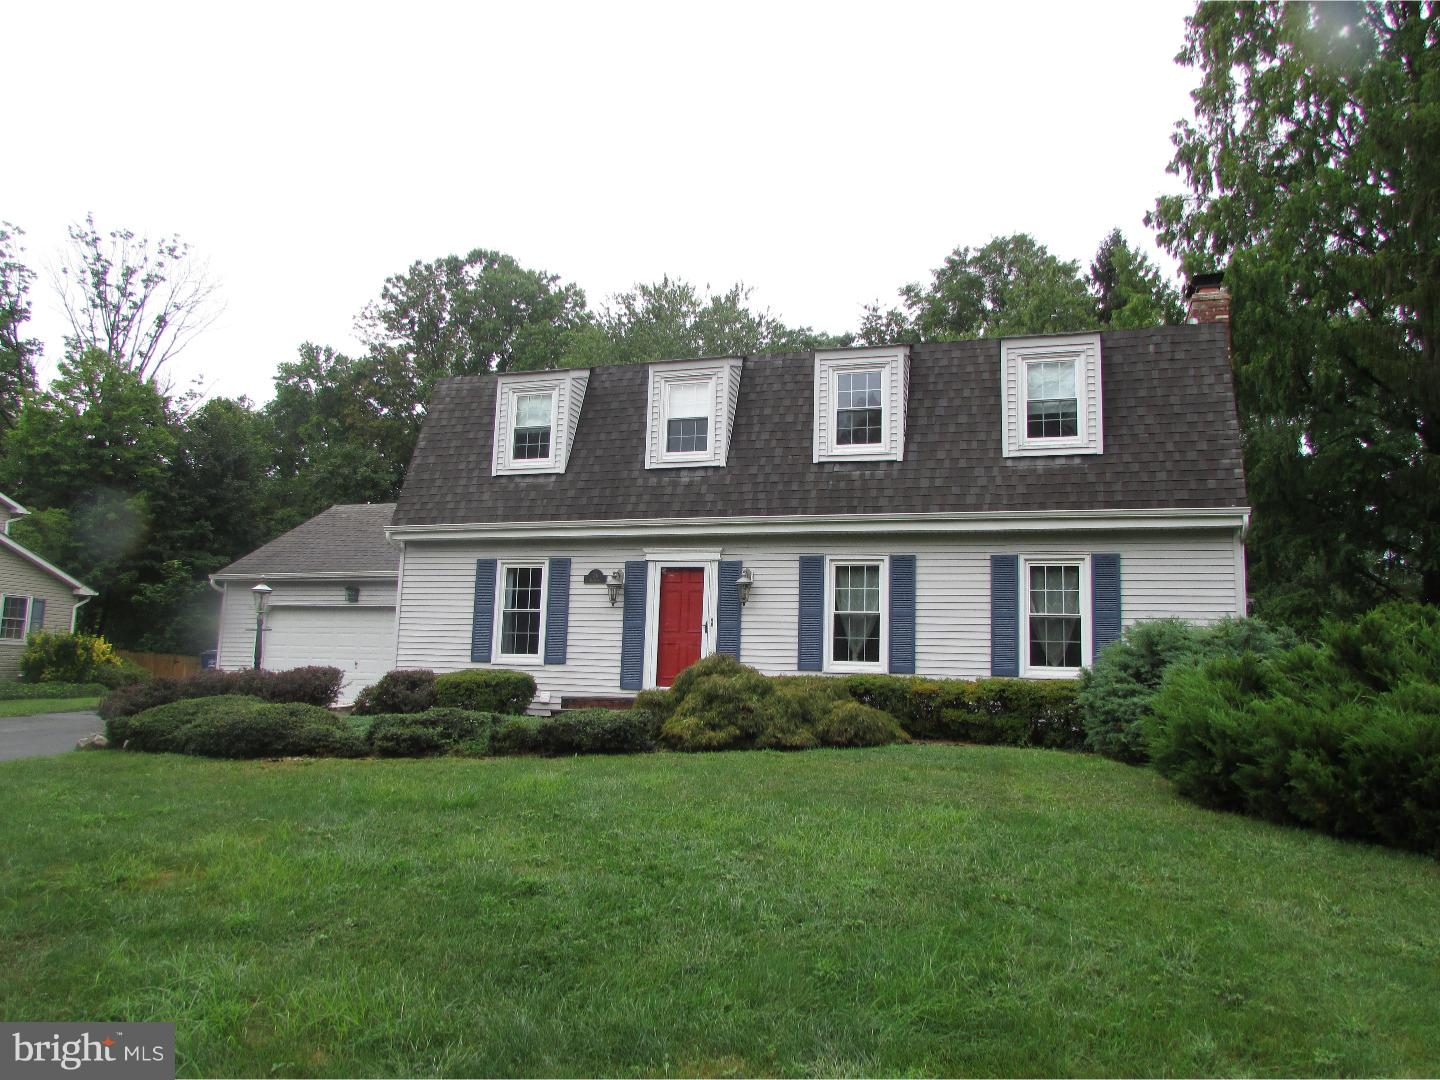 Single Family Home for Sale at 20 WOODLANE Road Lawrenceville, New Jersey 08648 United StatesMunicipality: Lawrence Township